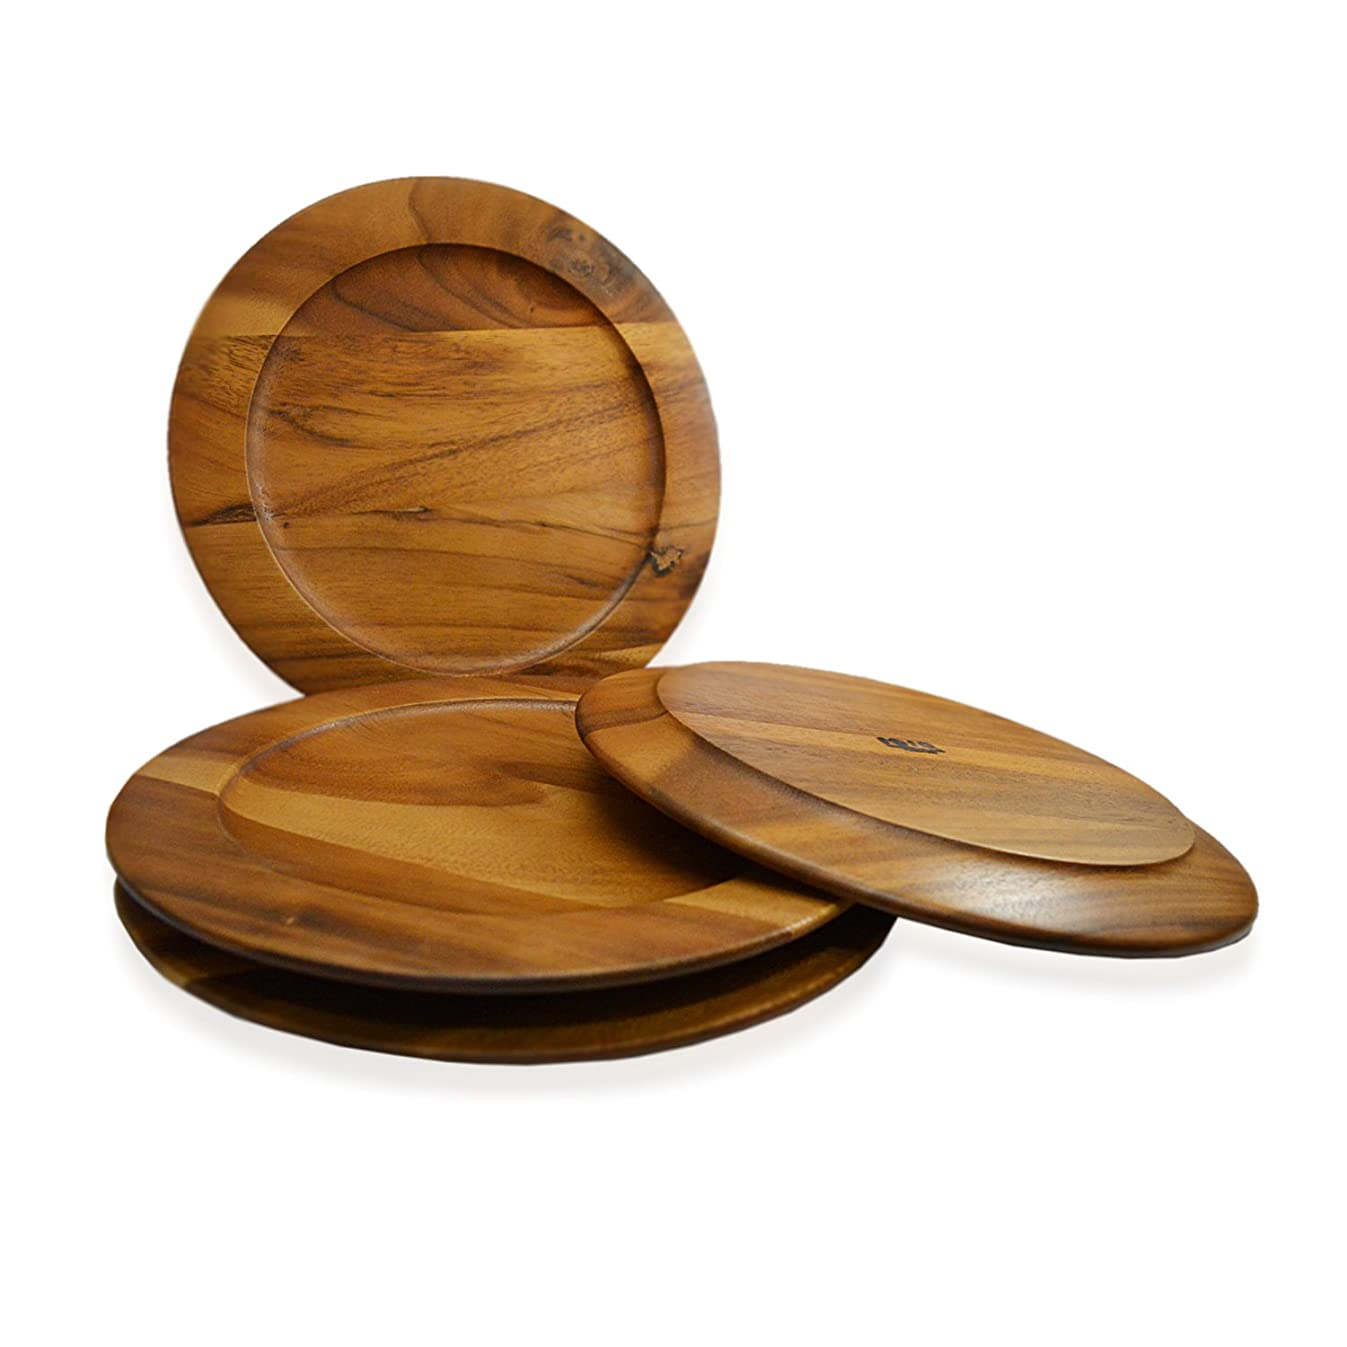 RoRo Classic Wood Charger Plates in Oak Stain Set of 4, 12 Inch